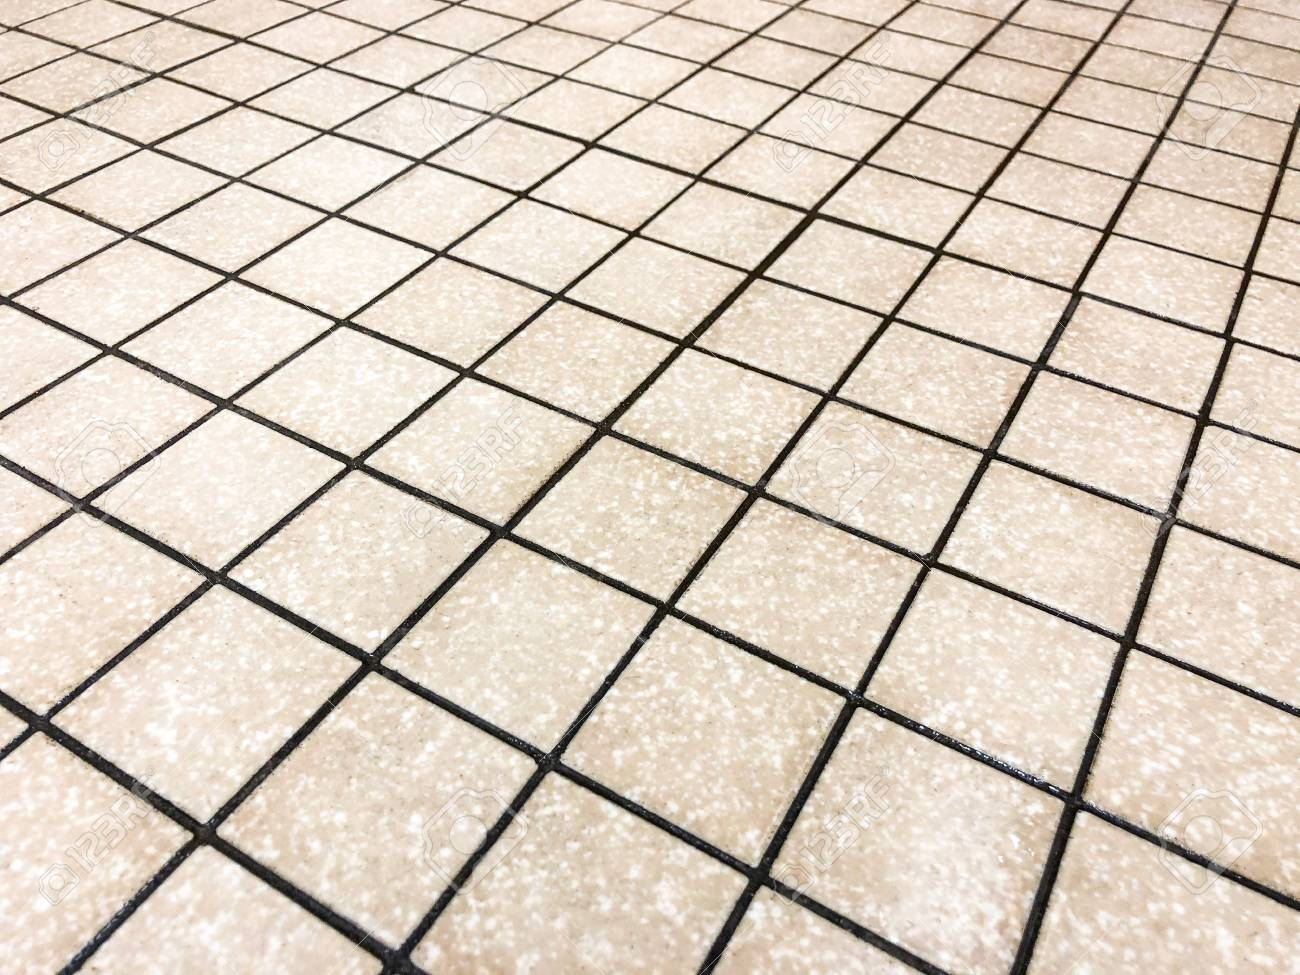 beige square tiles plased straight with black grid like grout